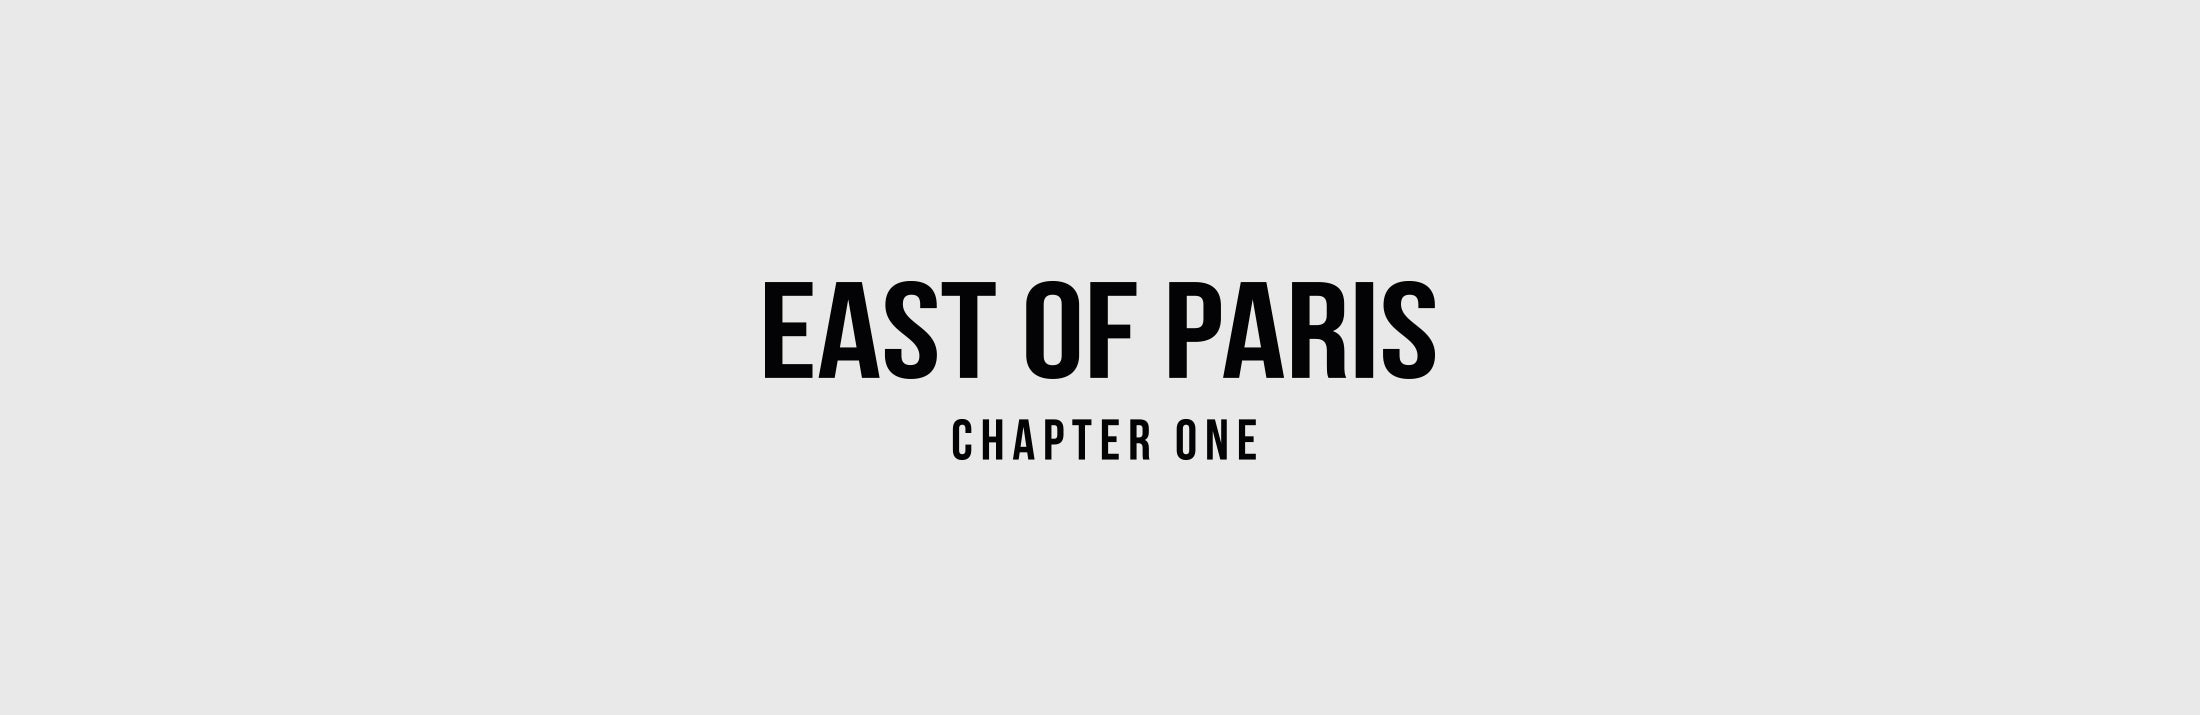 East of Paris Chapter One